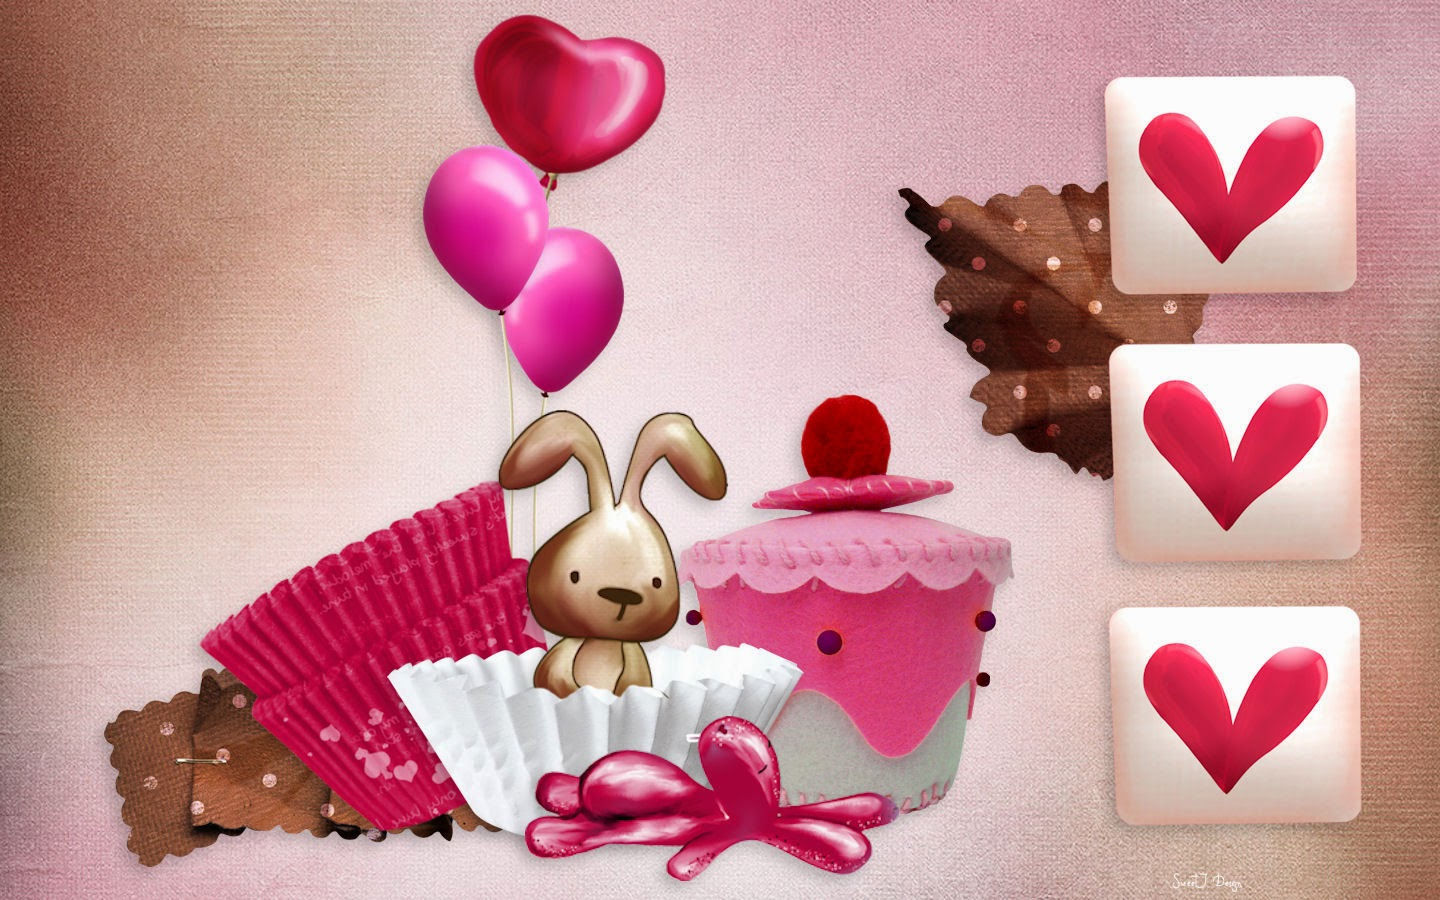 Pink-background-Birthday-Bunny-Cupcake-card-for-girls-1440x900-